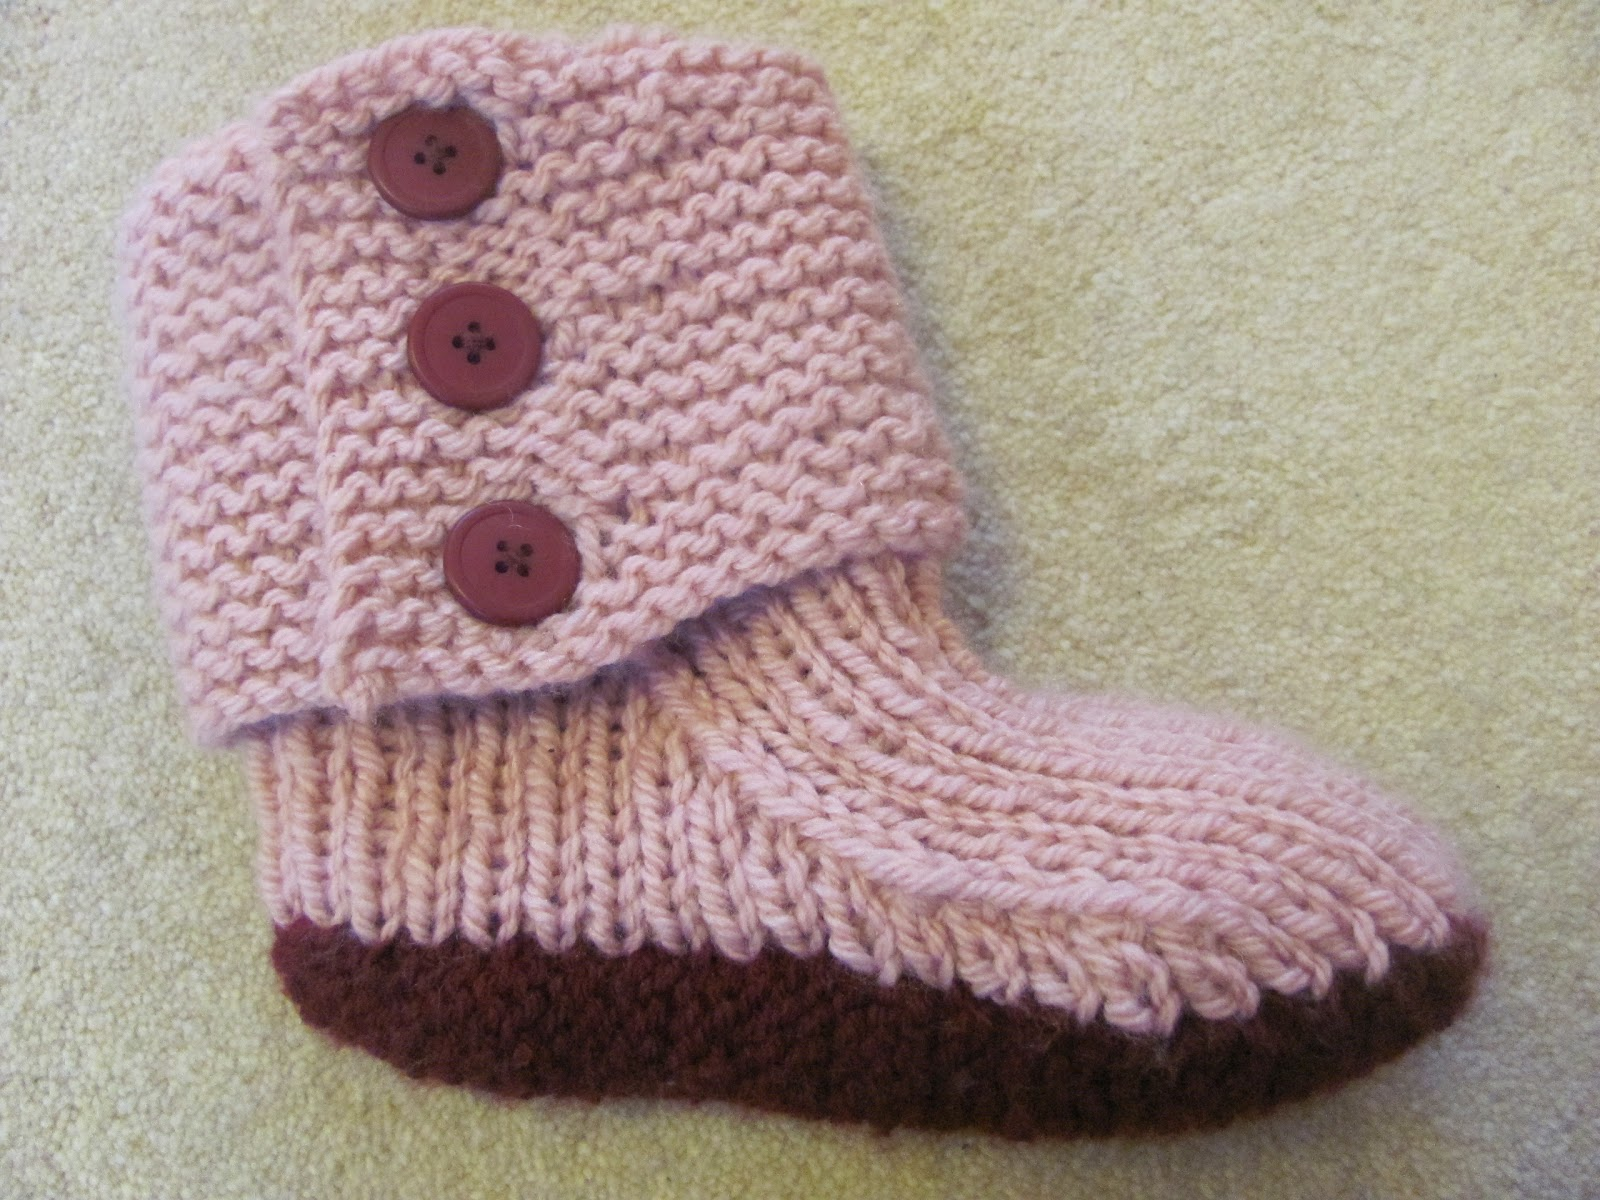 Knitting Patterns for Socks and Slippers at Knitting-and.com